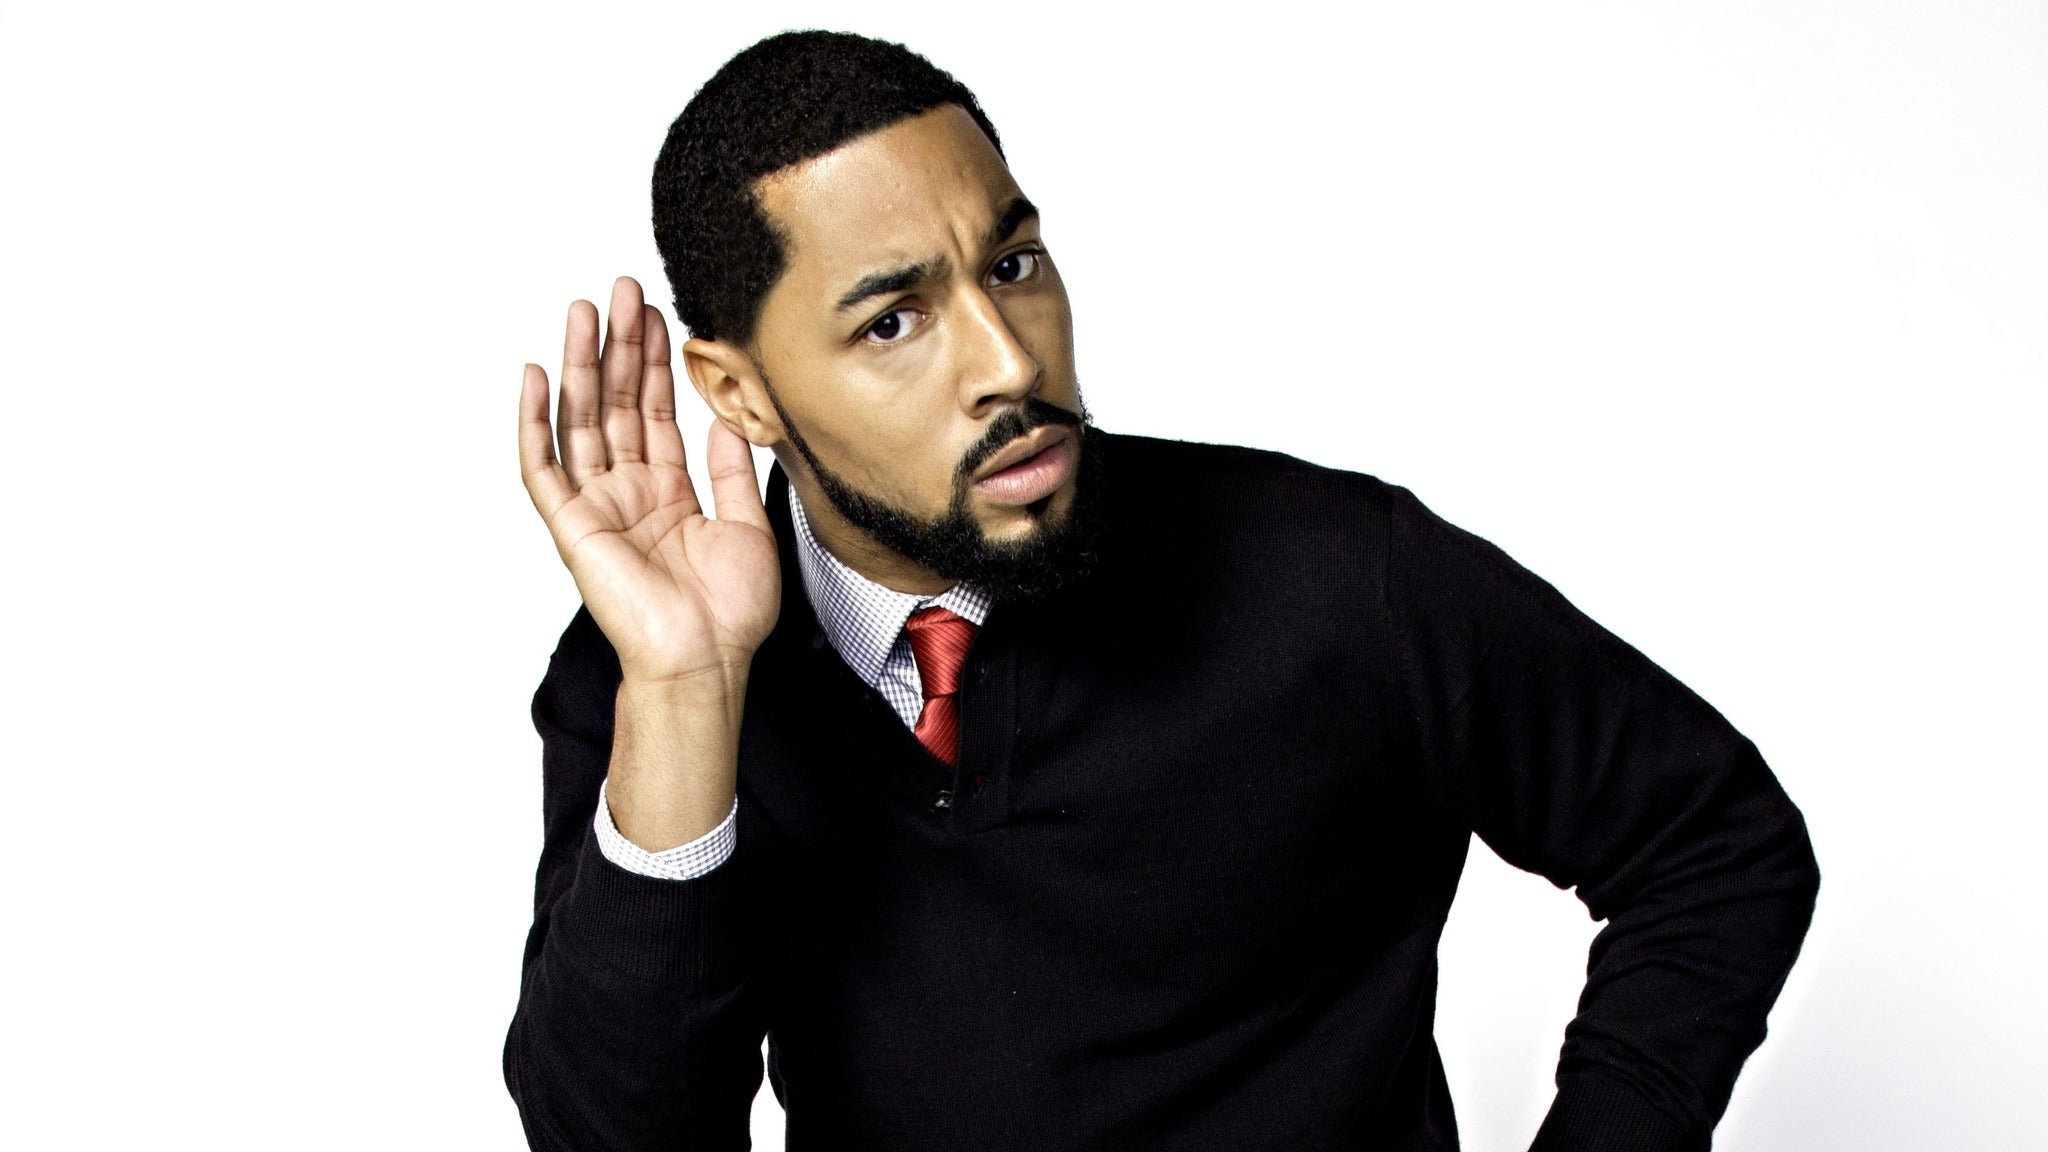 CoMo Comedy Club Presents Tone Bell - 9:30 PM